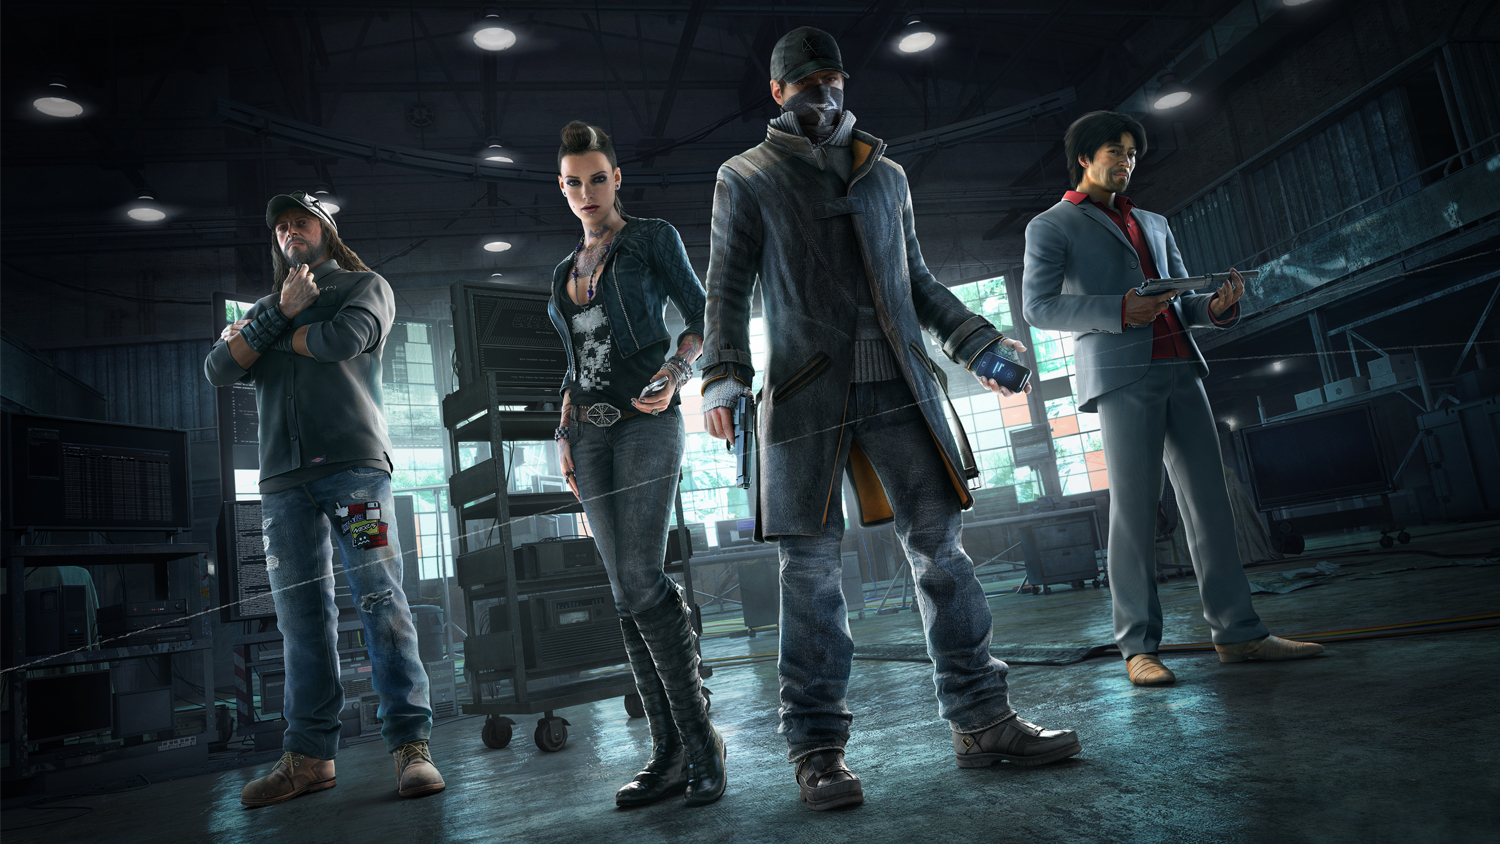 Watch Dogs Character Trailer